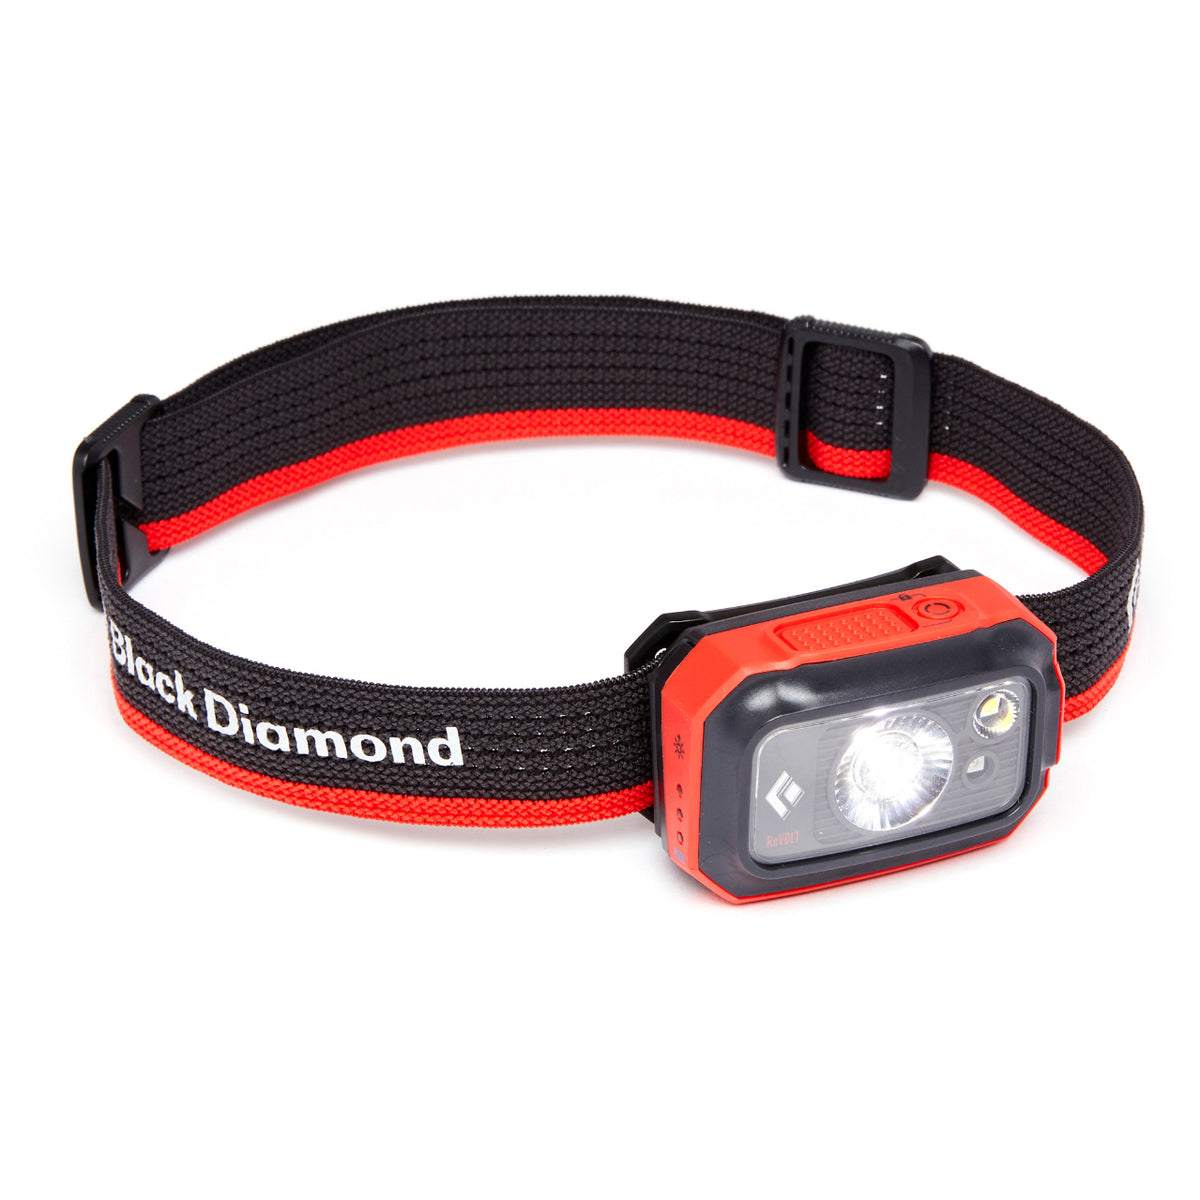 Black Diamond Revolt 350 Headlamp, front/side view in Octane colour